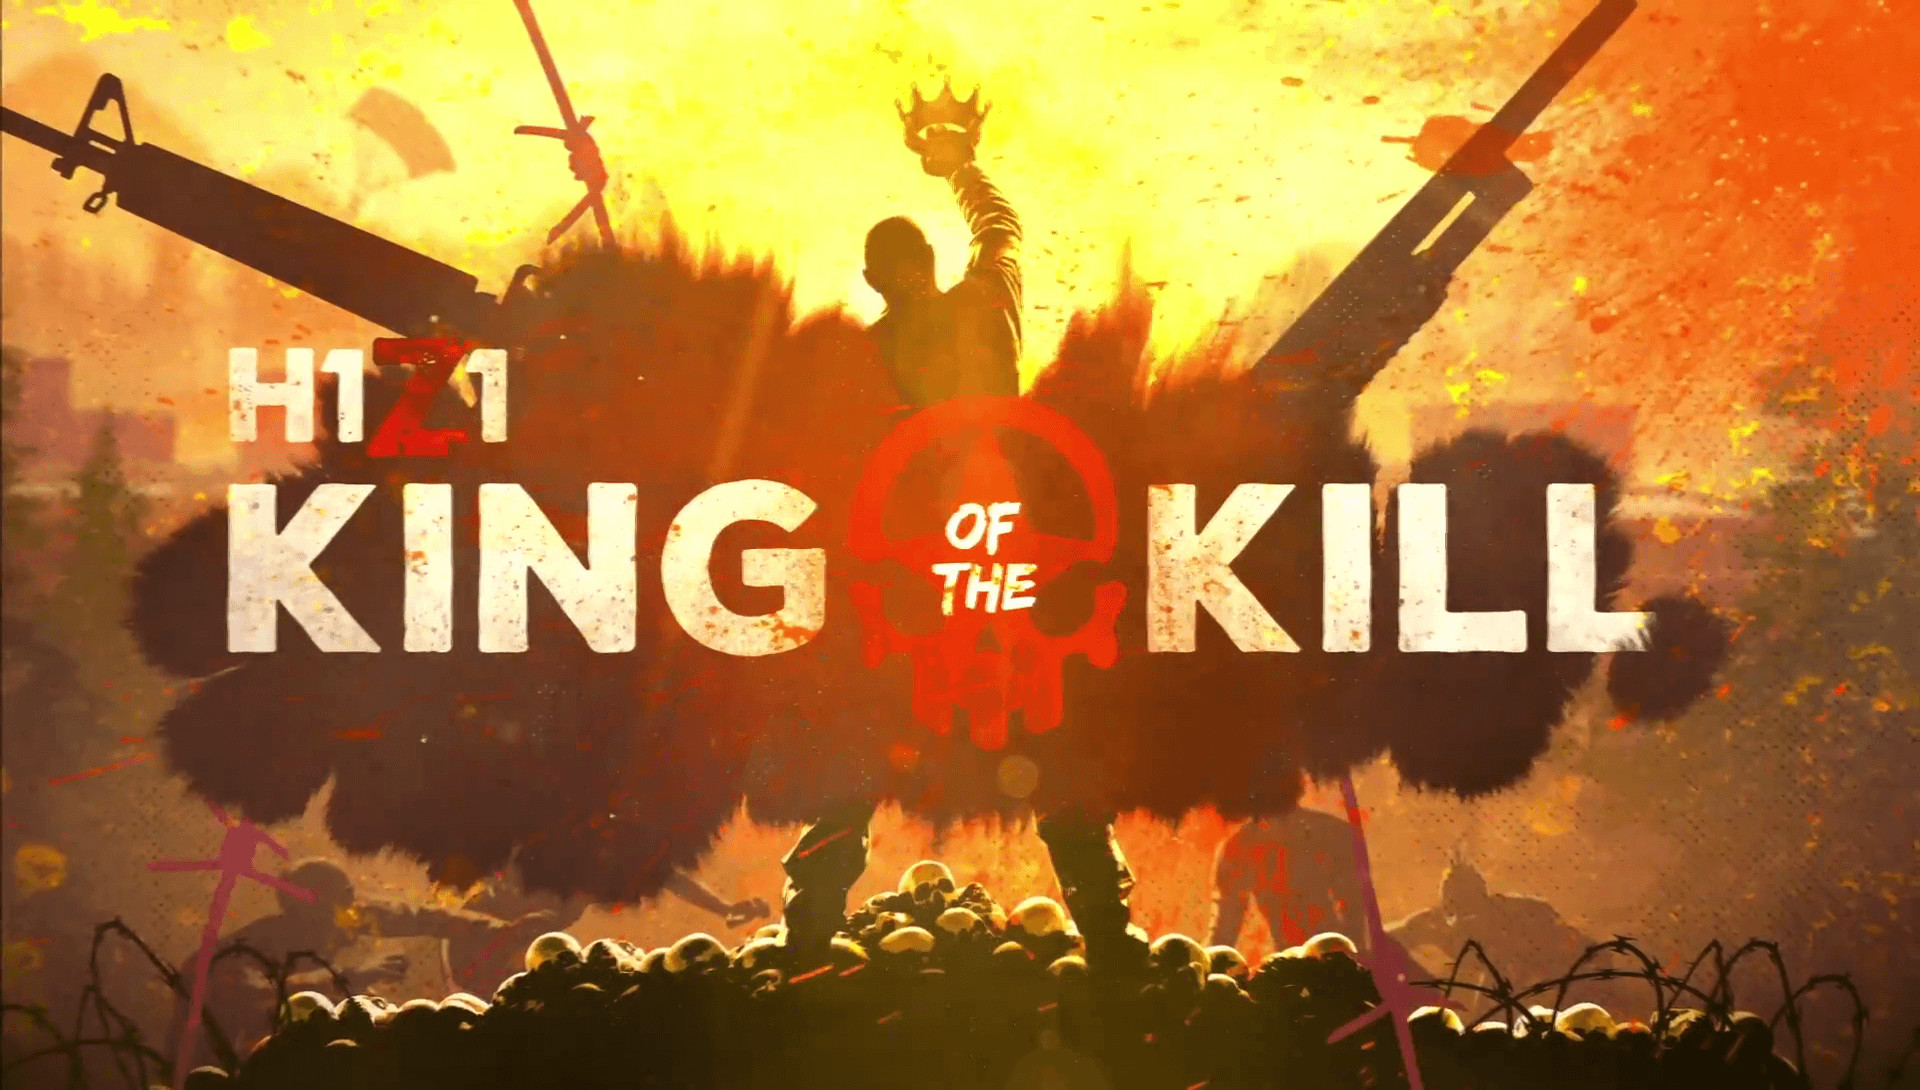 h1z1 king of the kill wallpapers (93+ images)